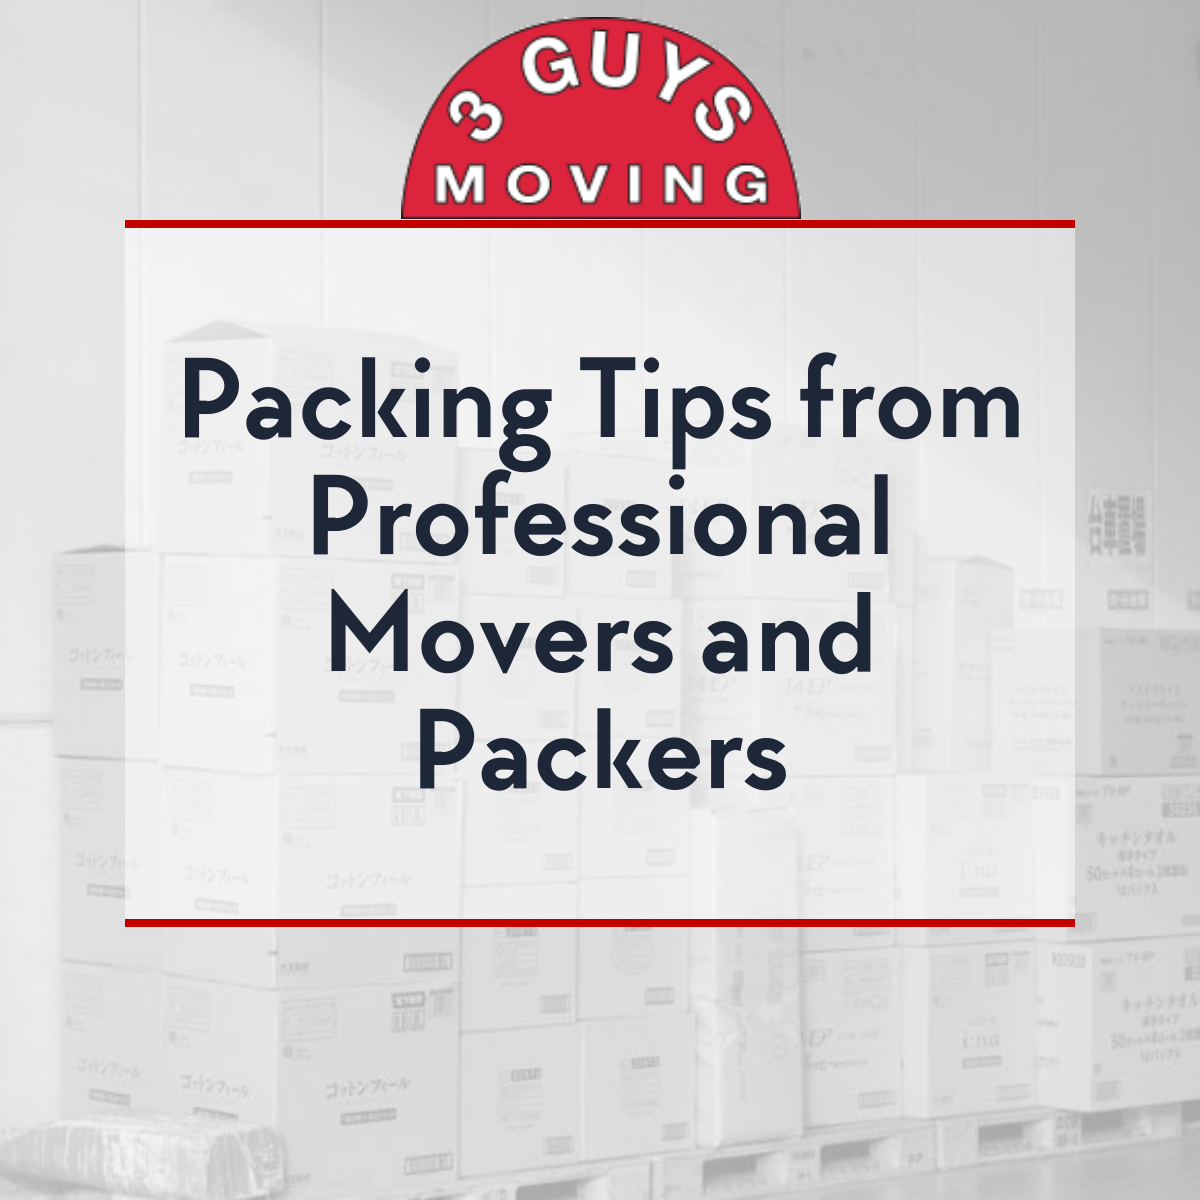 Packing Tips Professional Movers - Packing Tips from Professional Movers and Packers